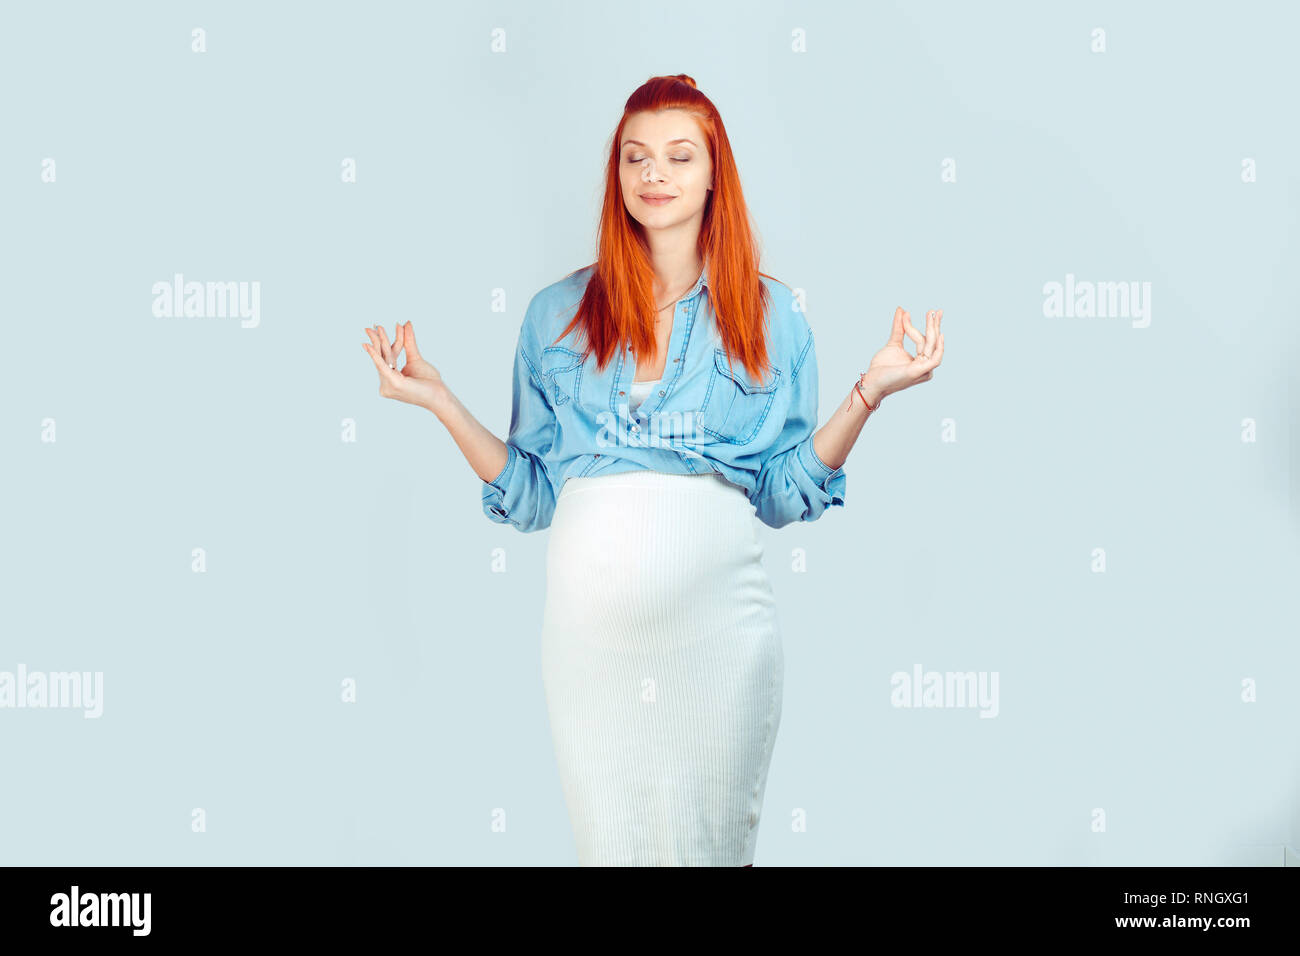 Young redhead pregnant woman in denim shirt holding hands apart and meditating taking breath before child birth isolated on blue. Stock Photo